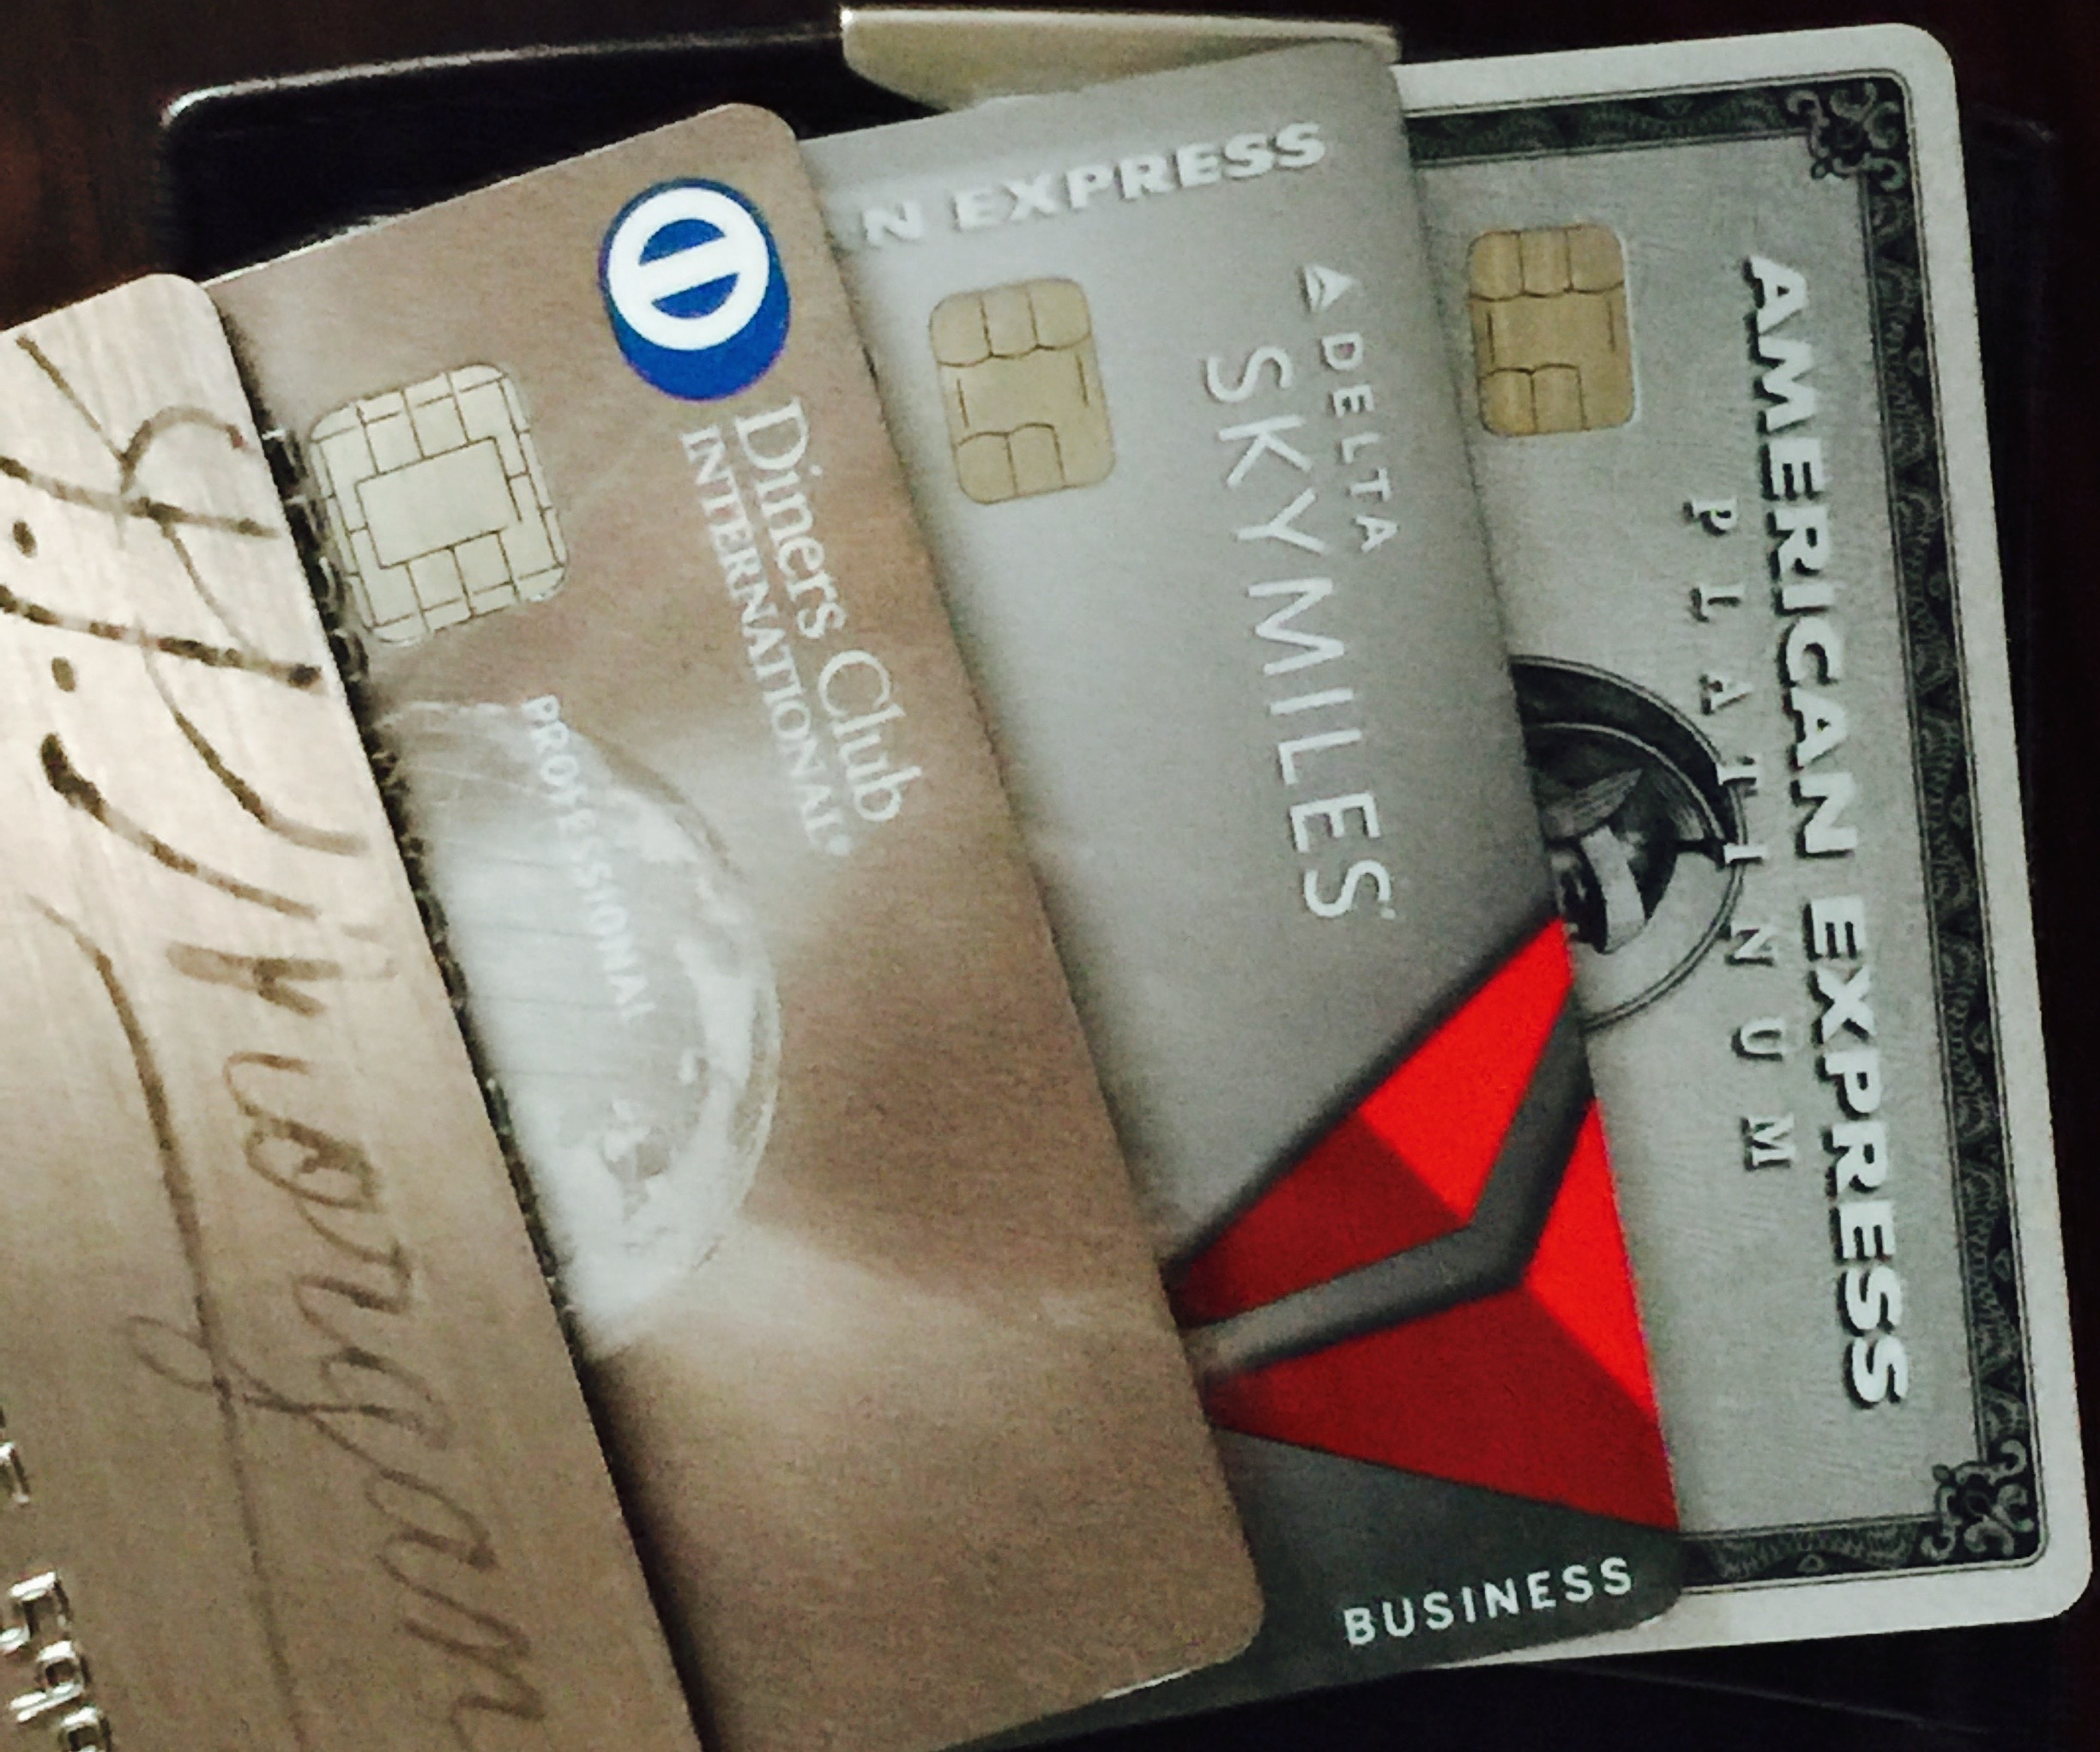 EMV credit cards: Only one of these is chip-and-PIN